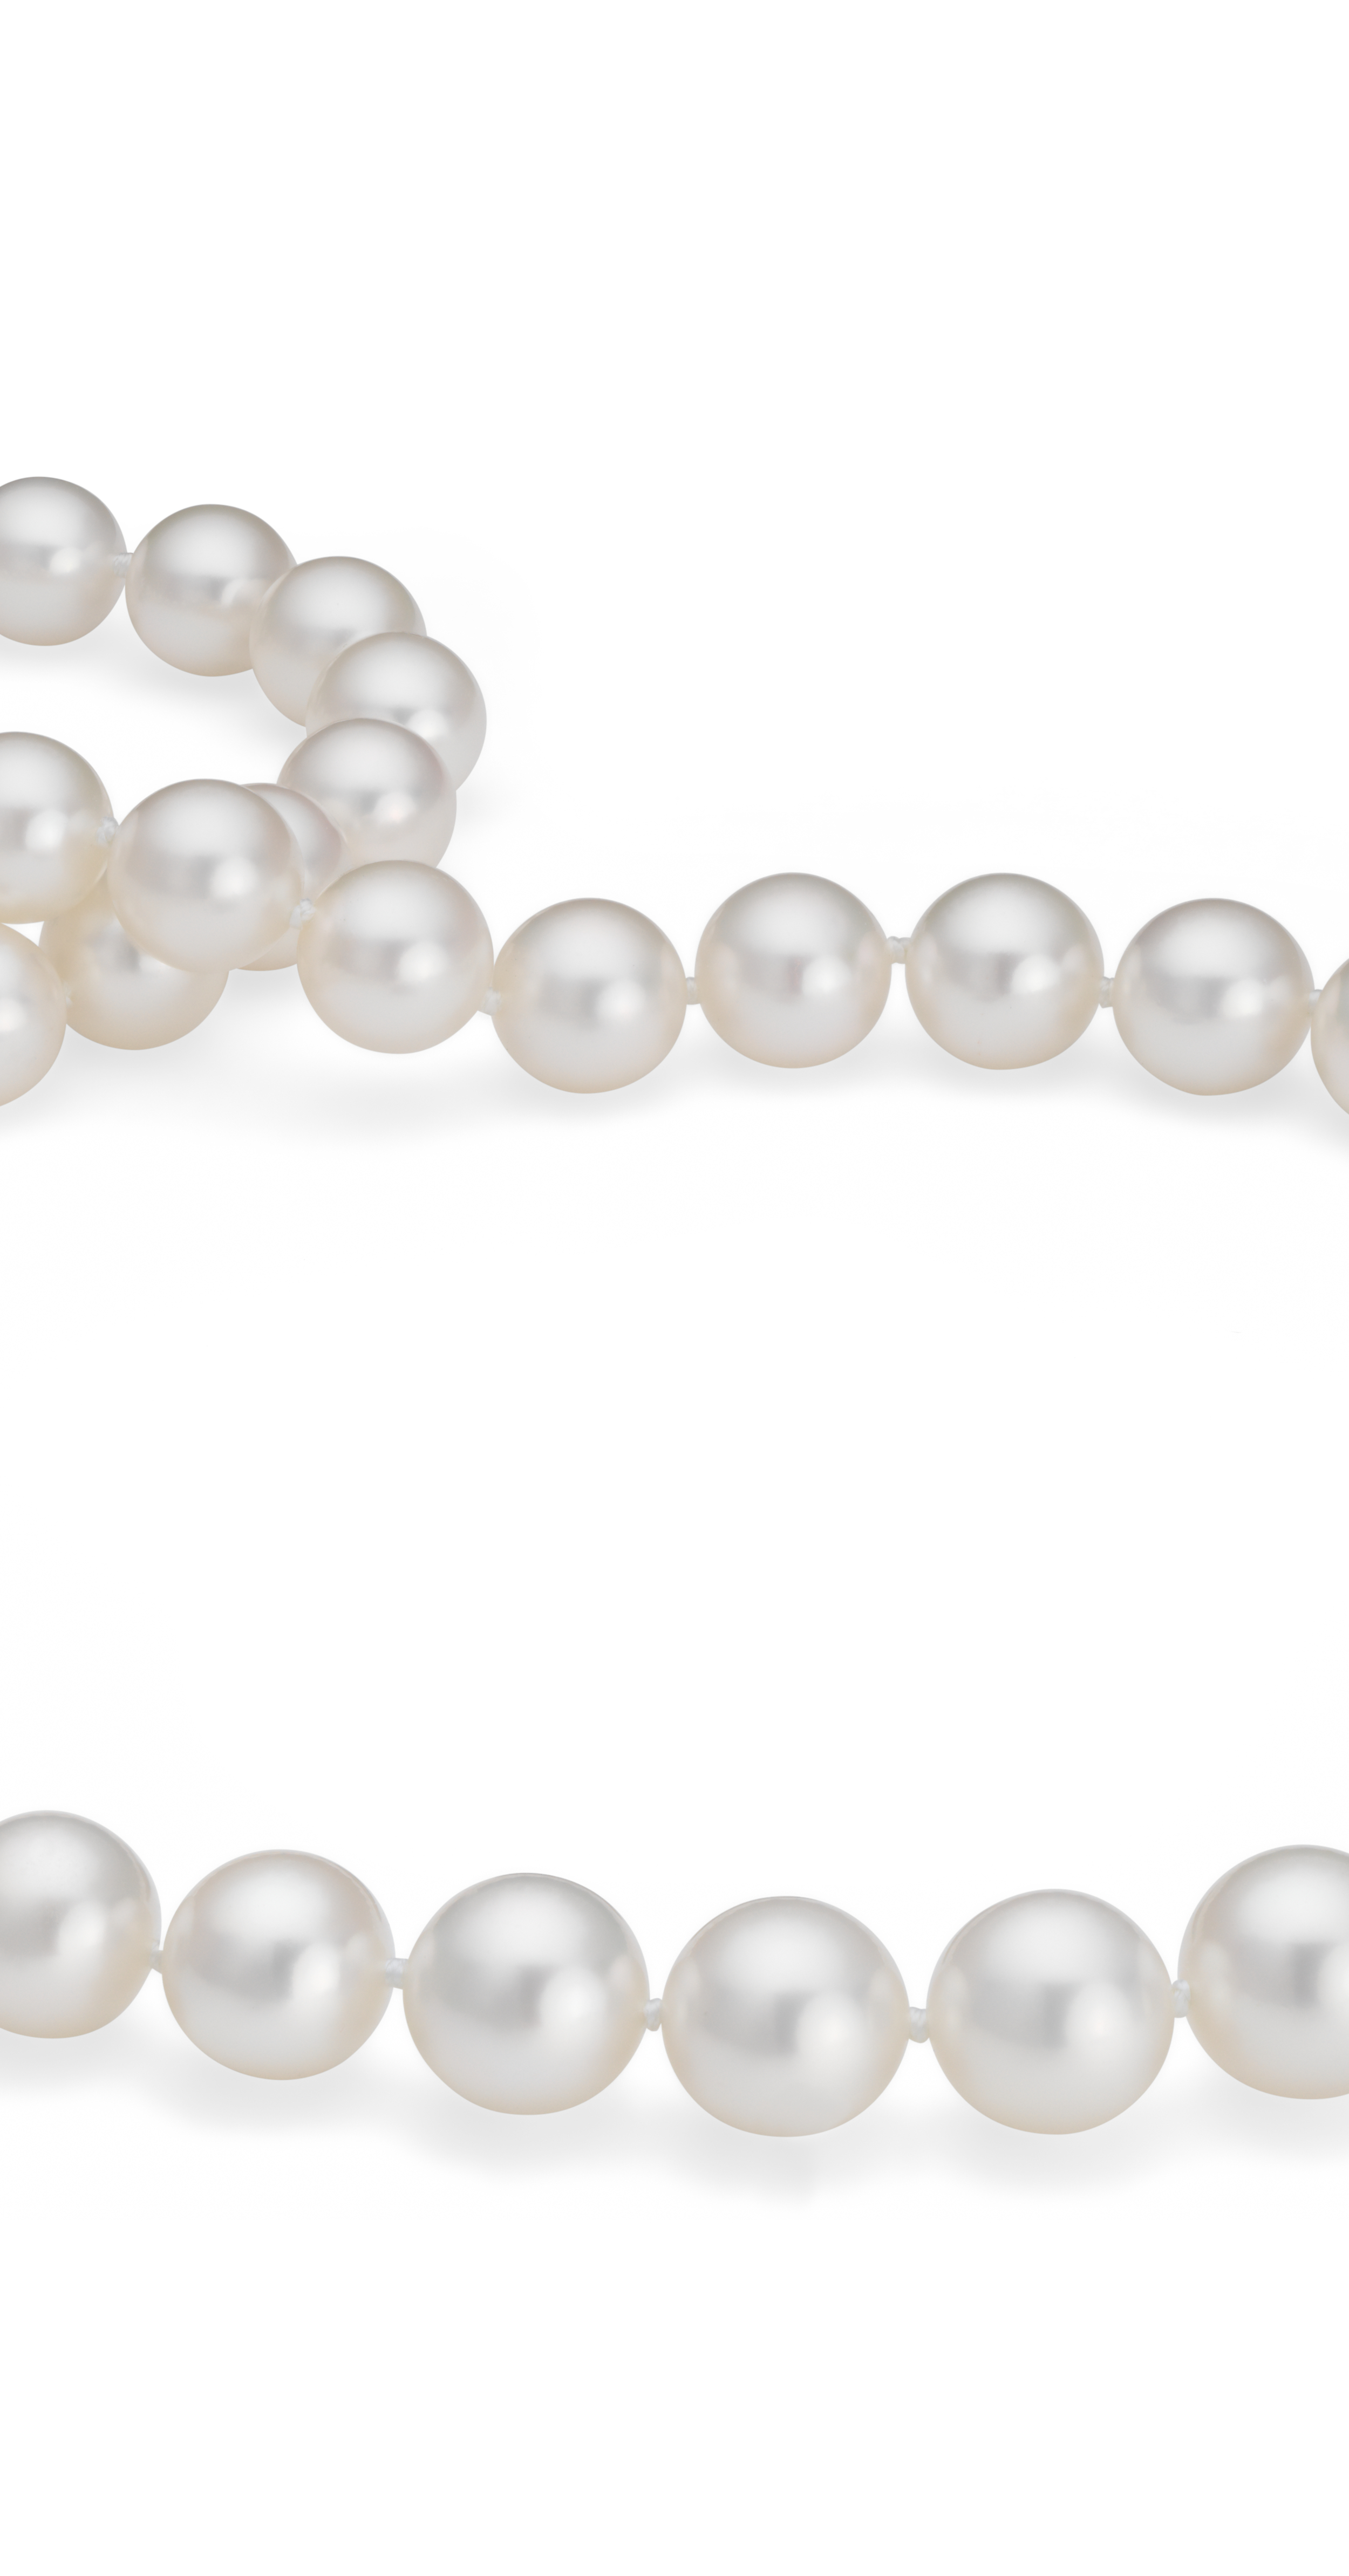 South Sea Pearl Strands with 18k White Gold